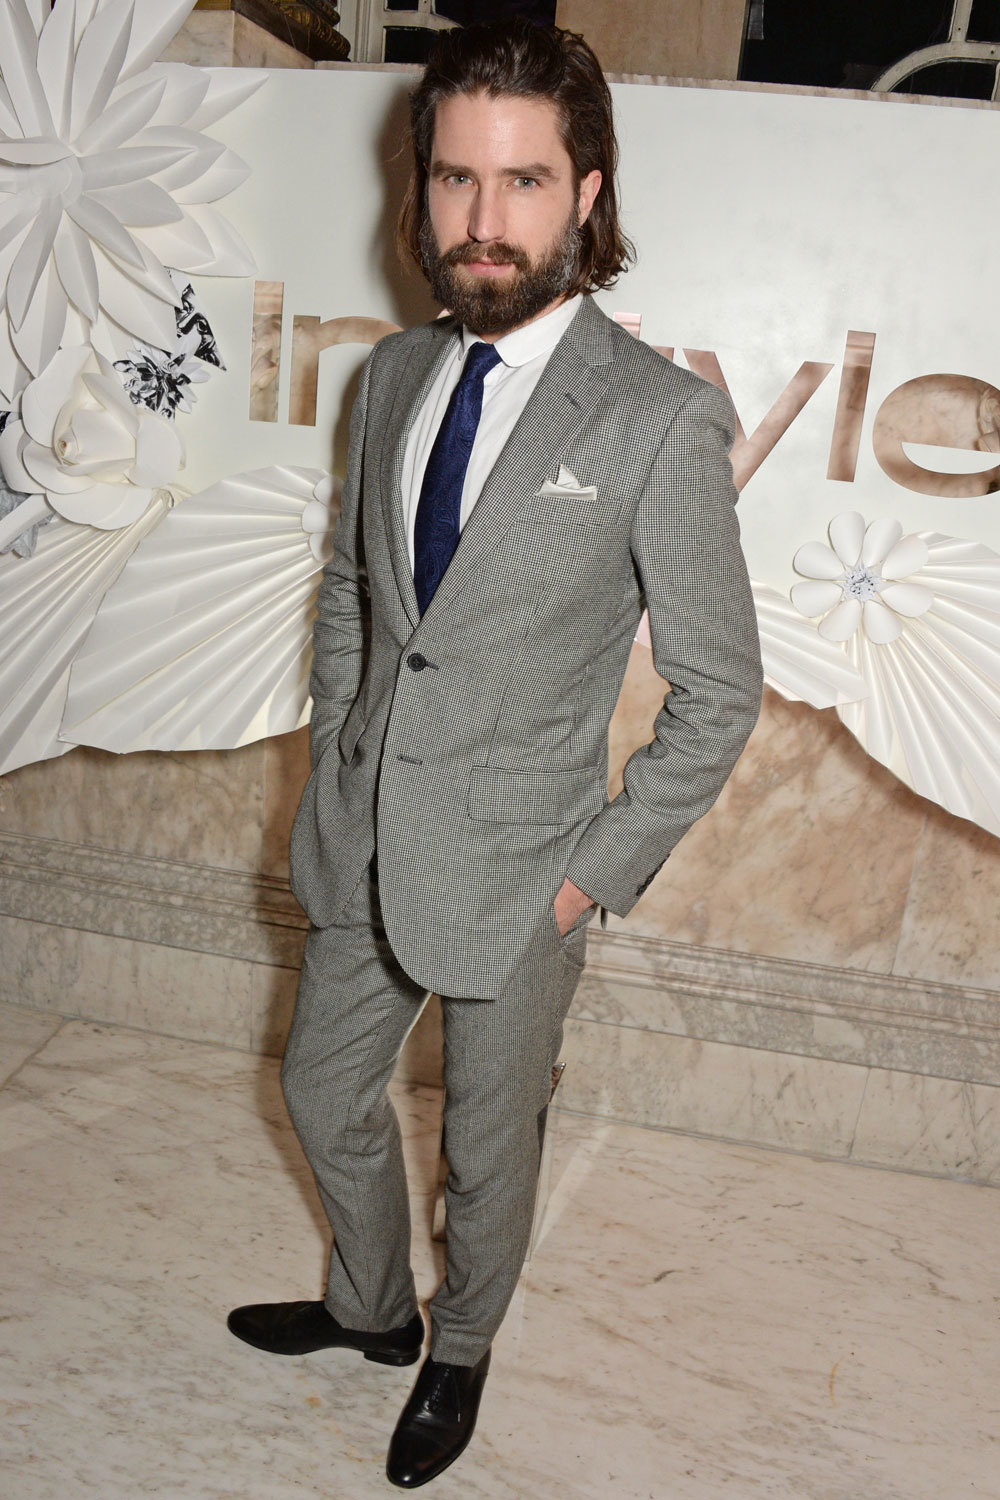 Nail That Dapper Look With A Grey Suit And White Oxford Shirt Go For